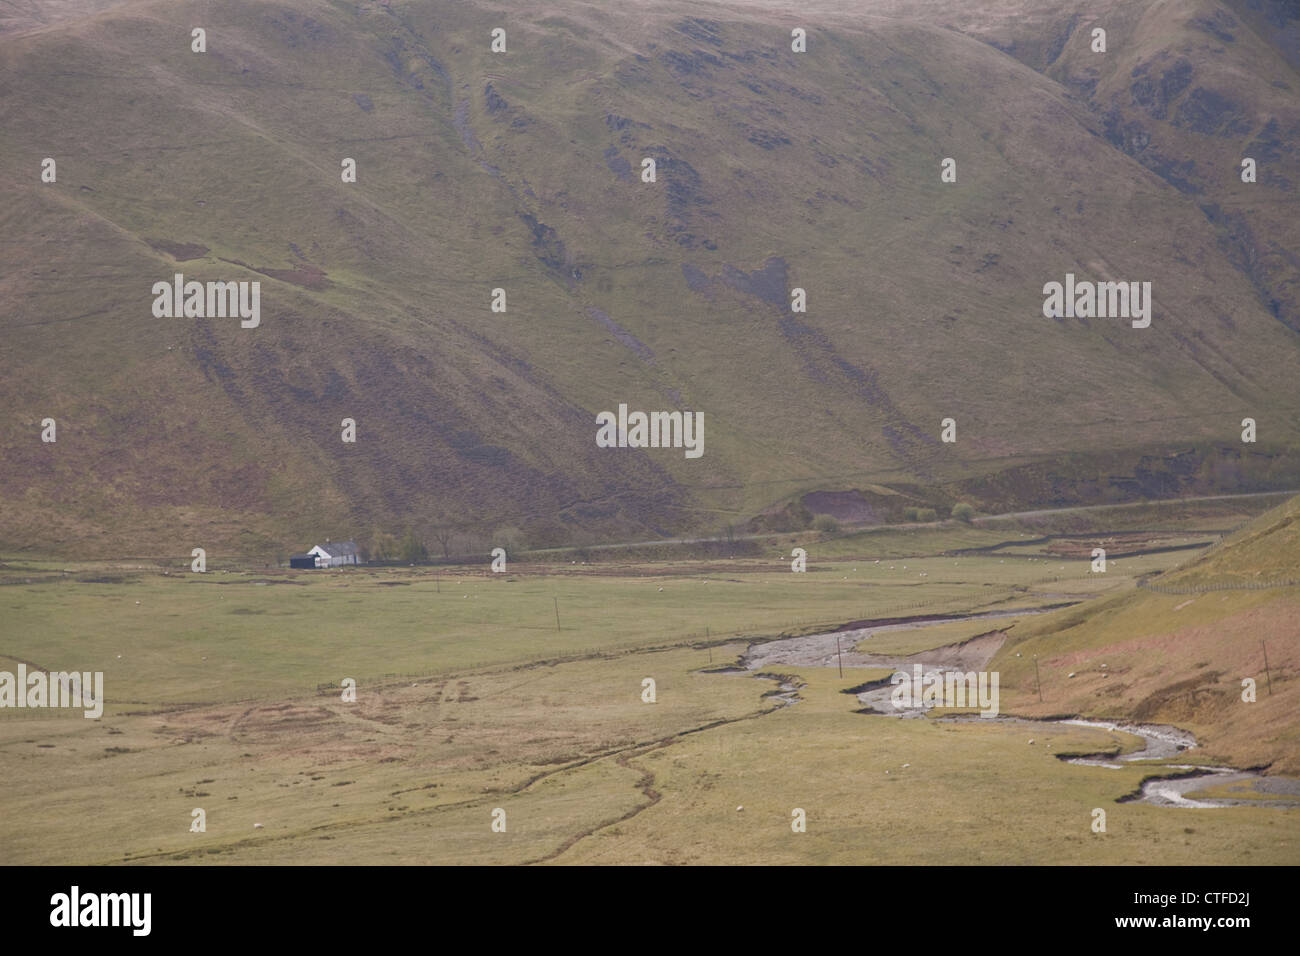 Scotland's highlands,and lowlands,history, culture,clans, tartans, - Stock Image